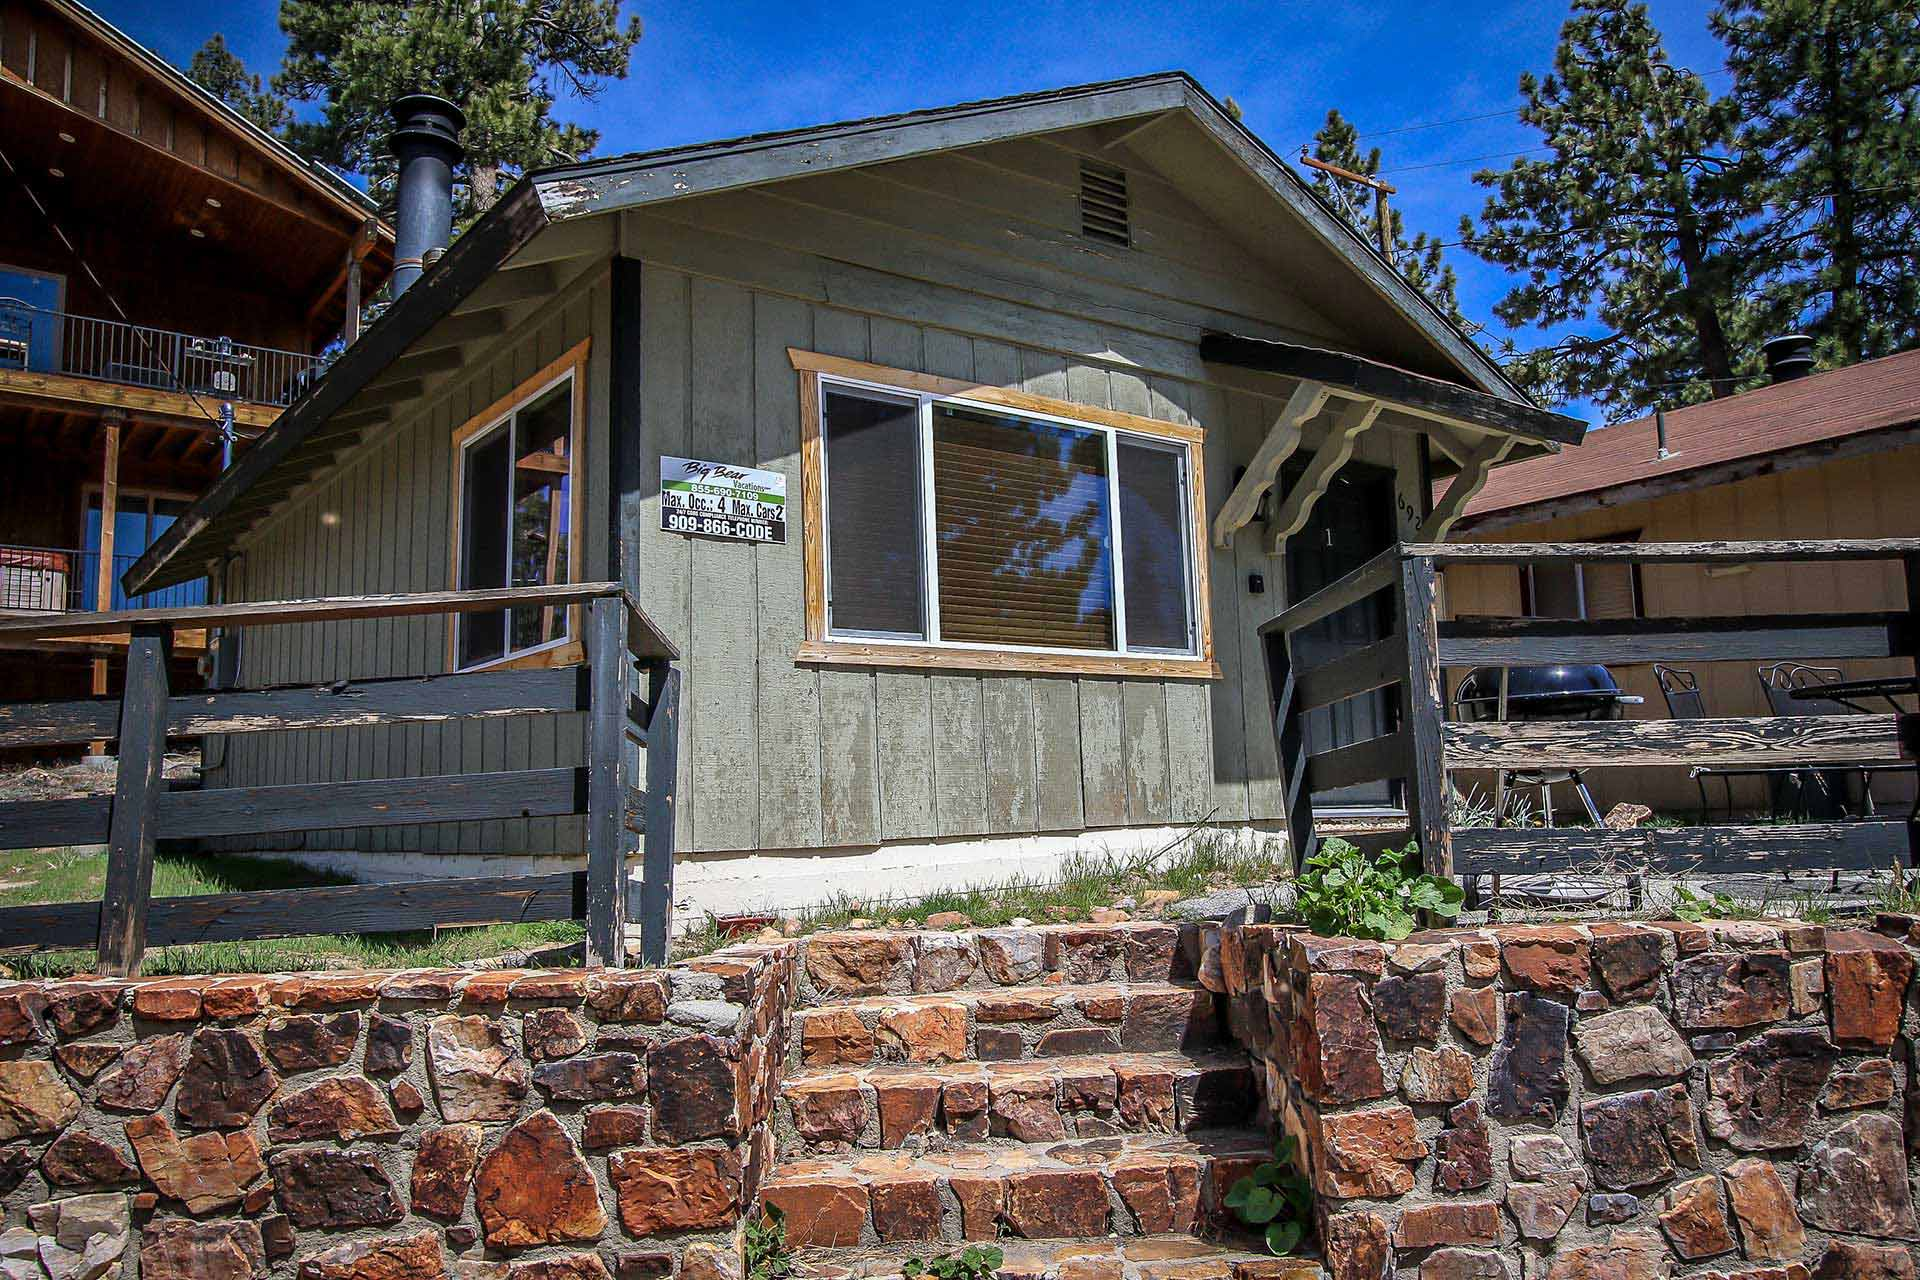 1506 daisy duo ra46100 redawning for Big bear lakefront cabin rentals